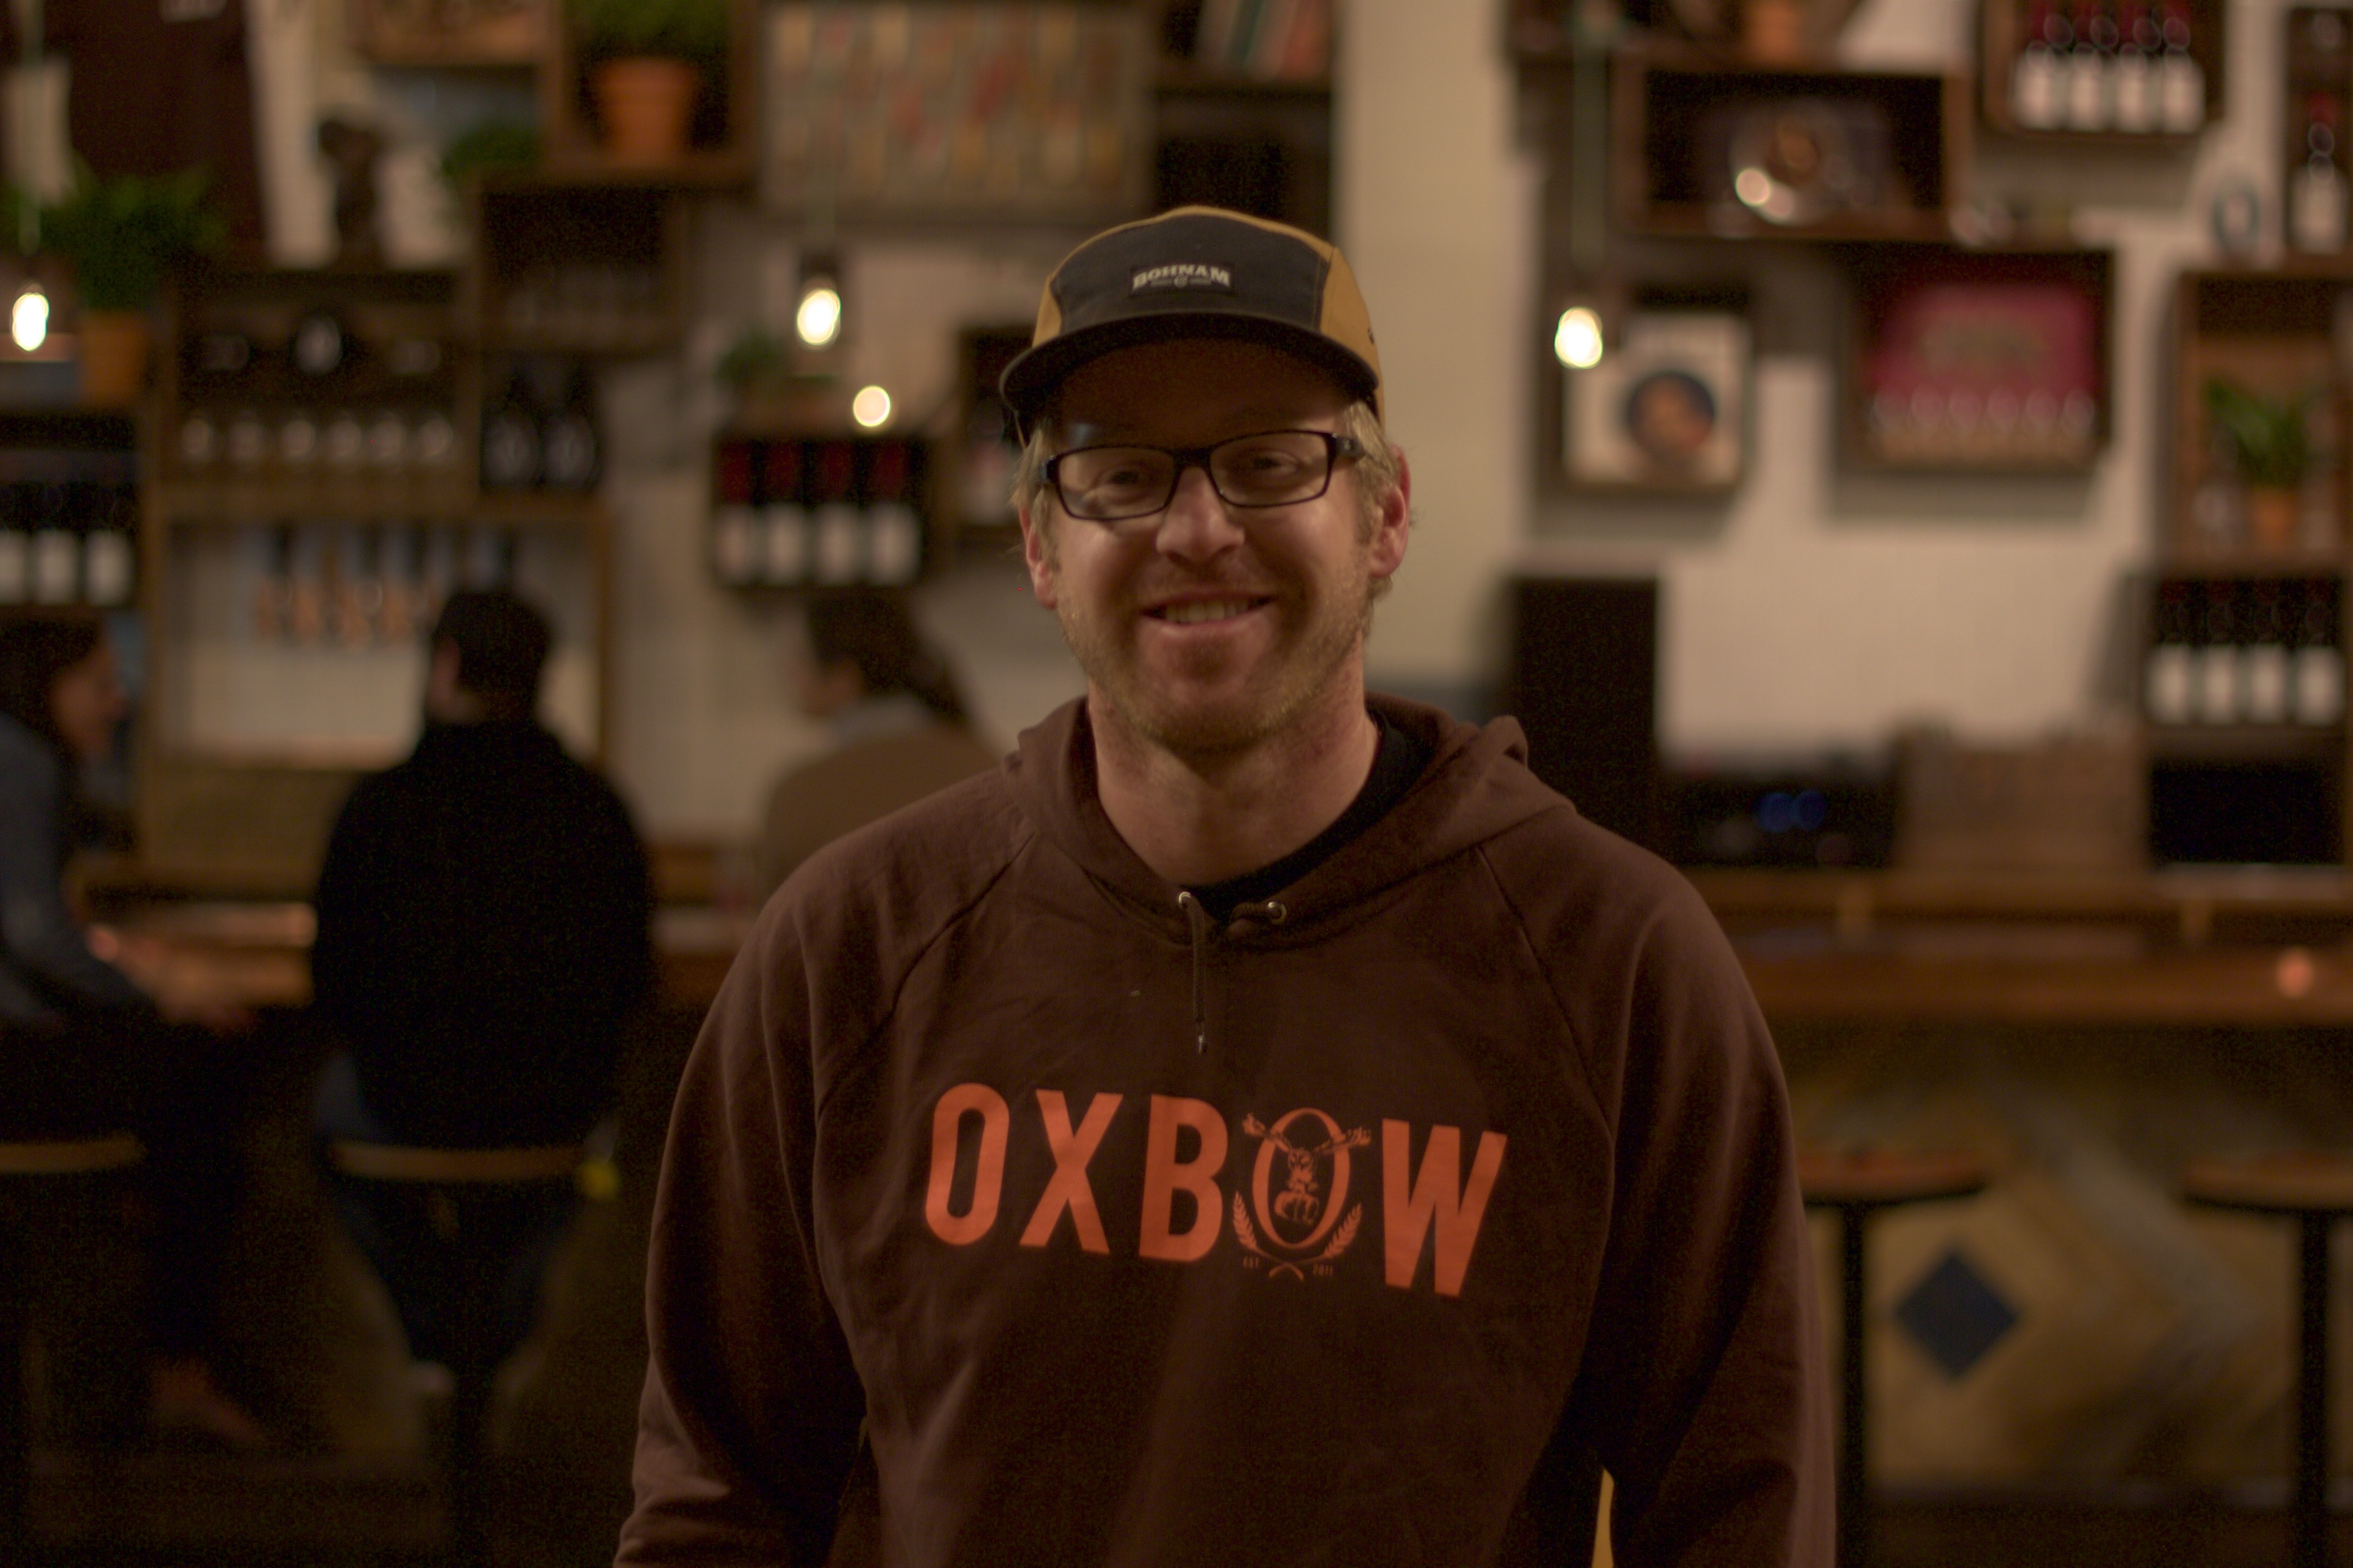 Tim Adams, co-owner, head brewer, and master blender of Oxbow Brewing Company.